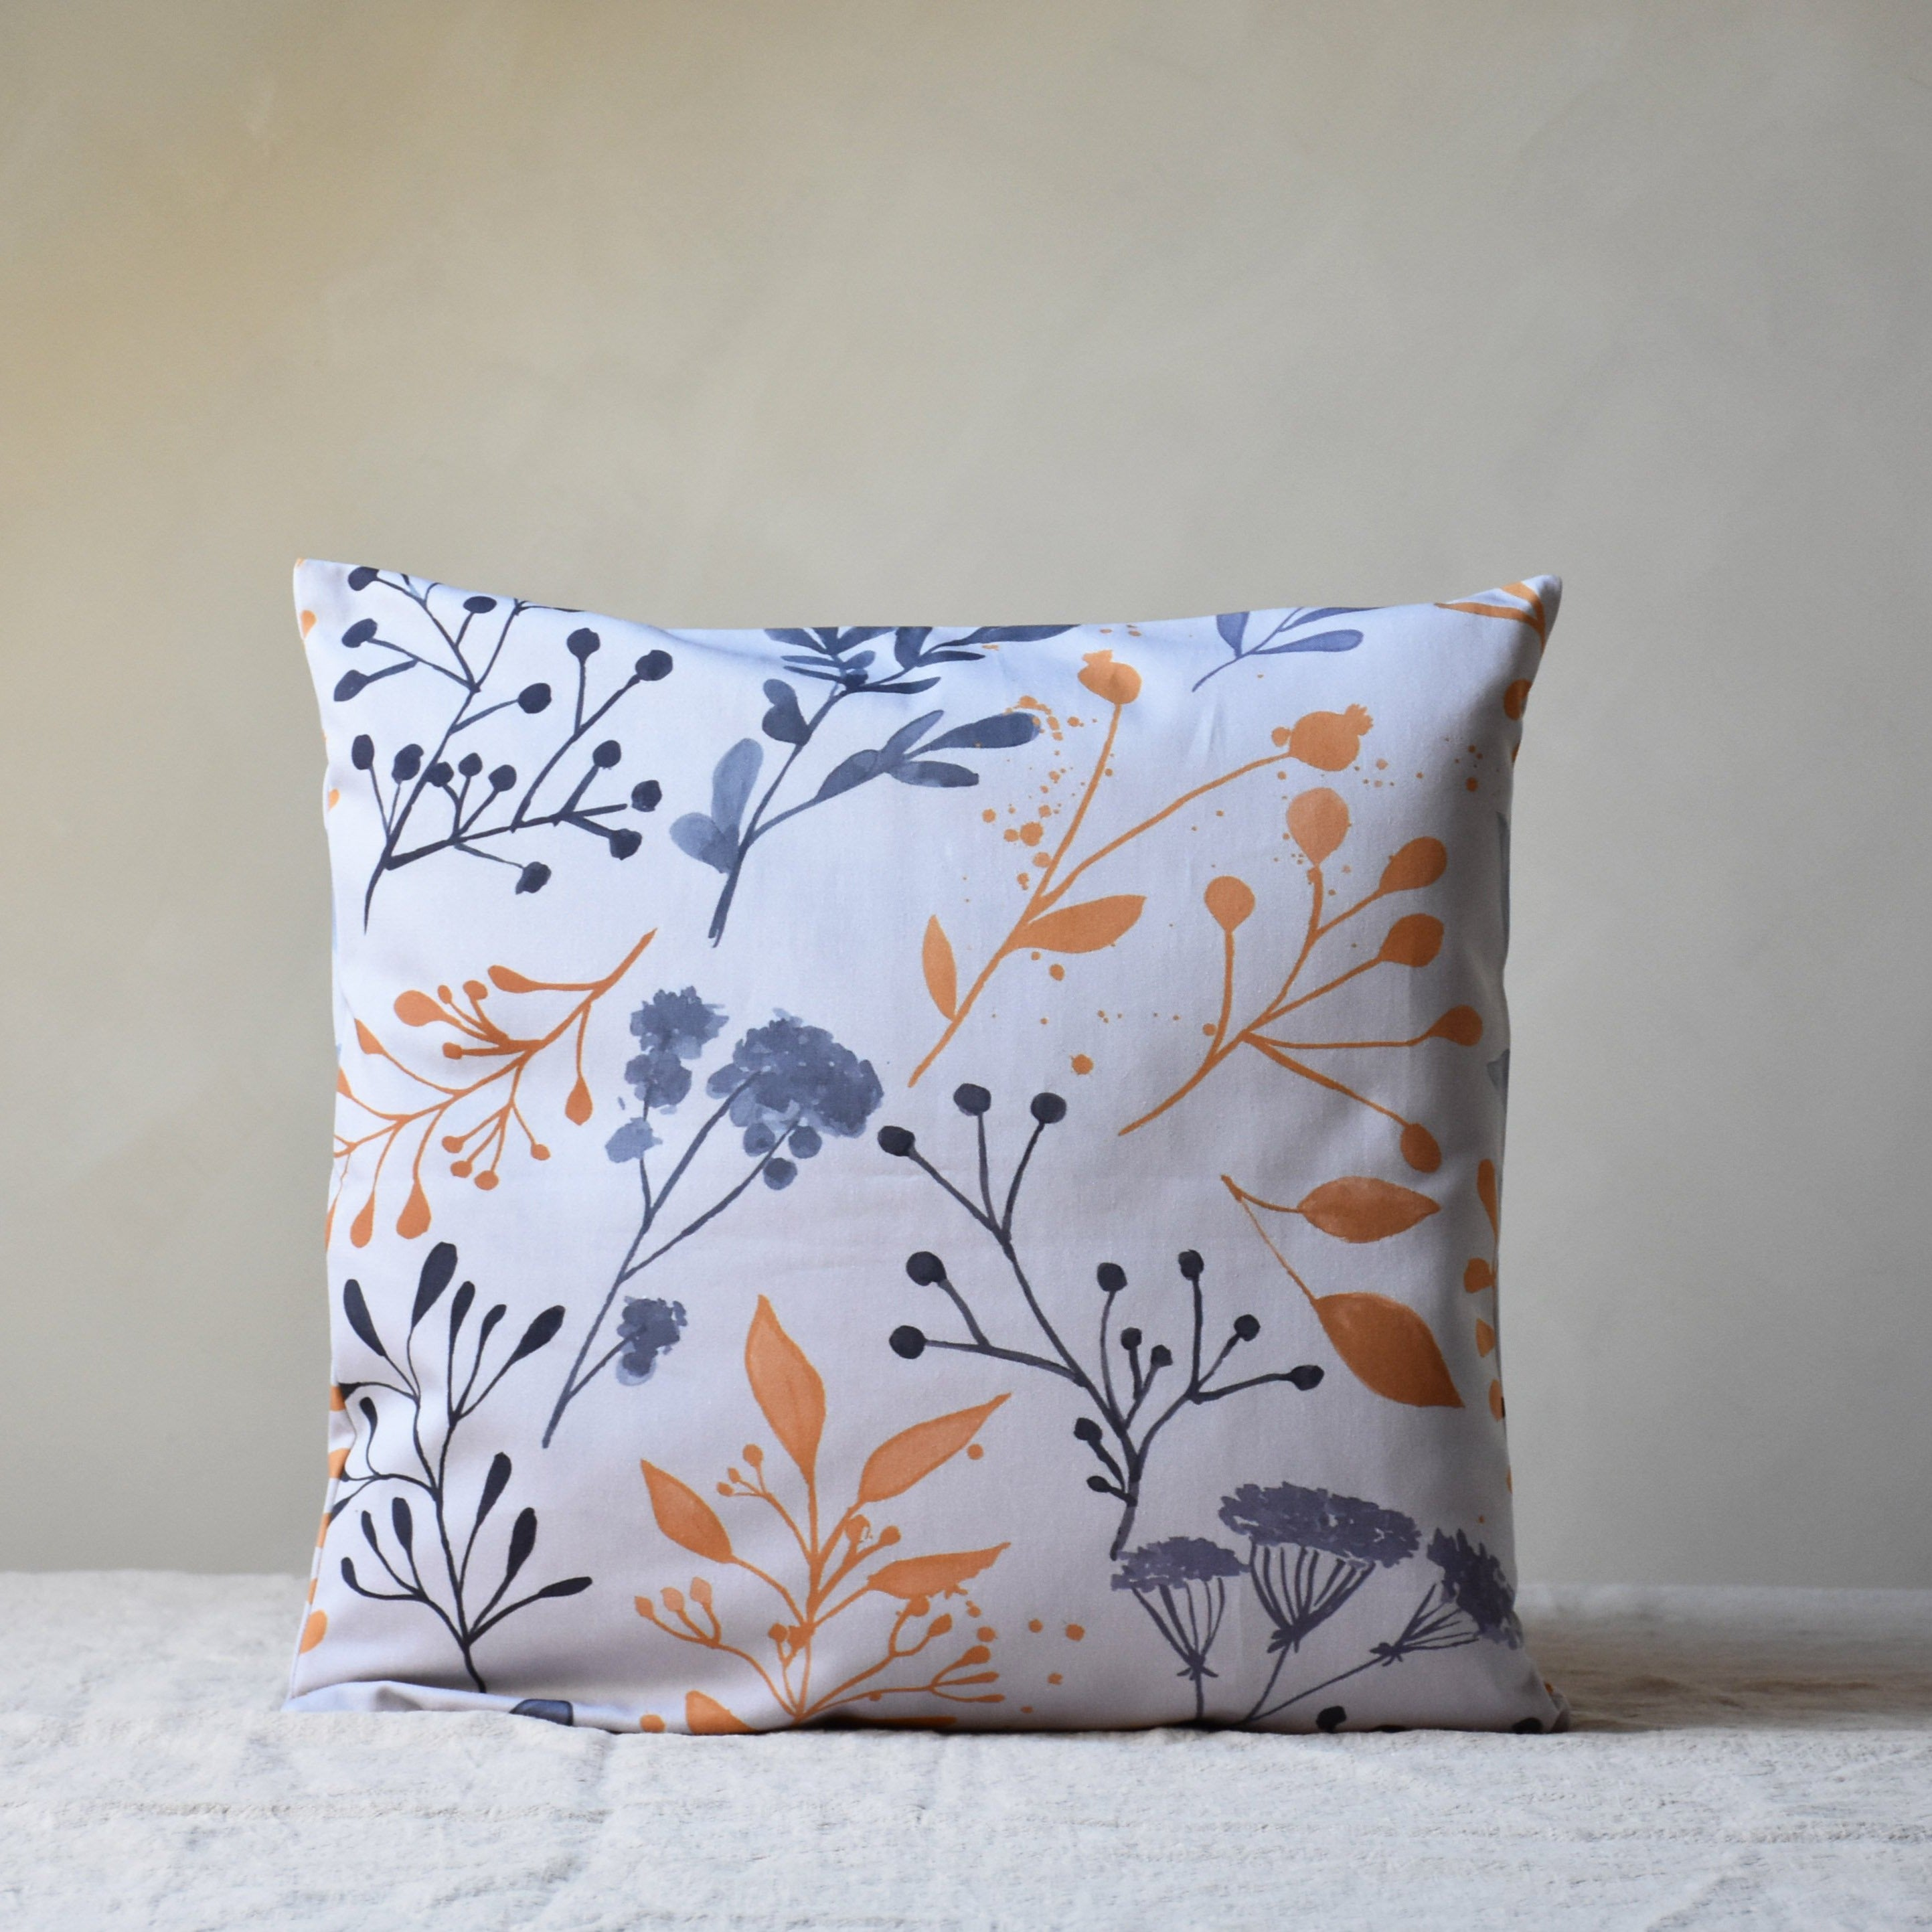 Cushion cover - Early bloom in yellow - listliving